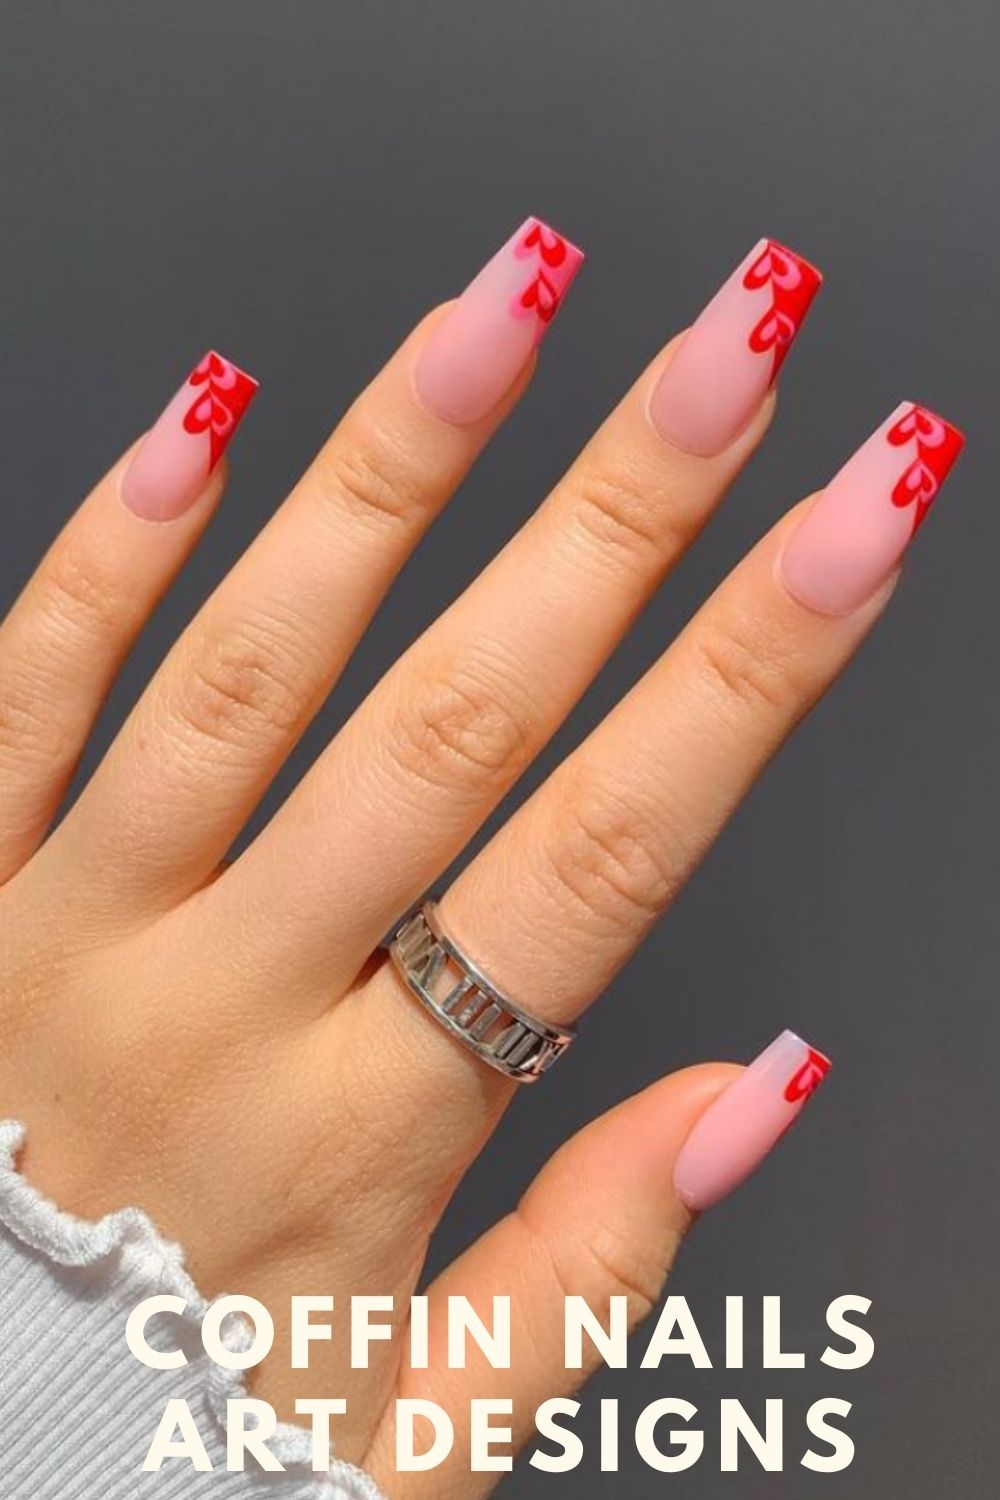 Pink and red coffin shape nail design